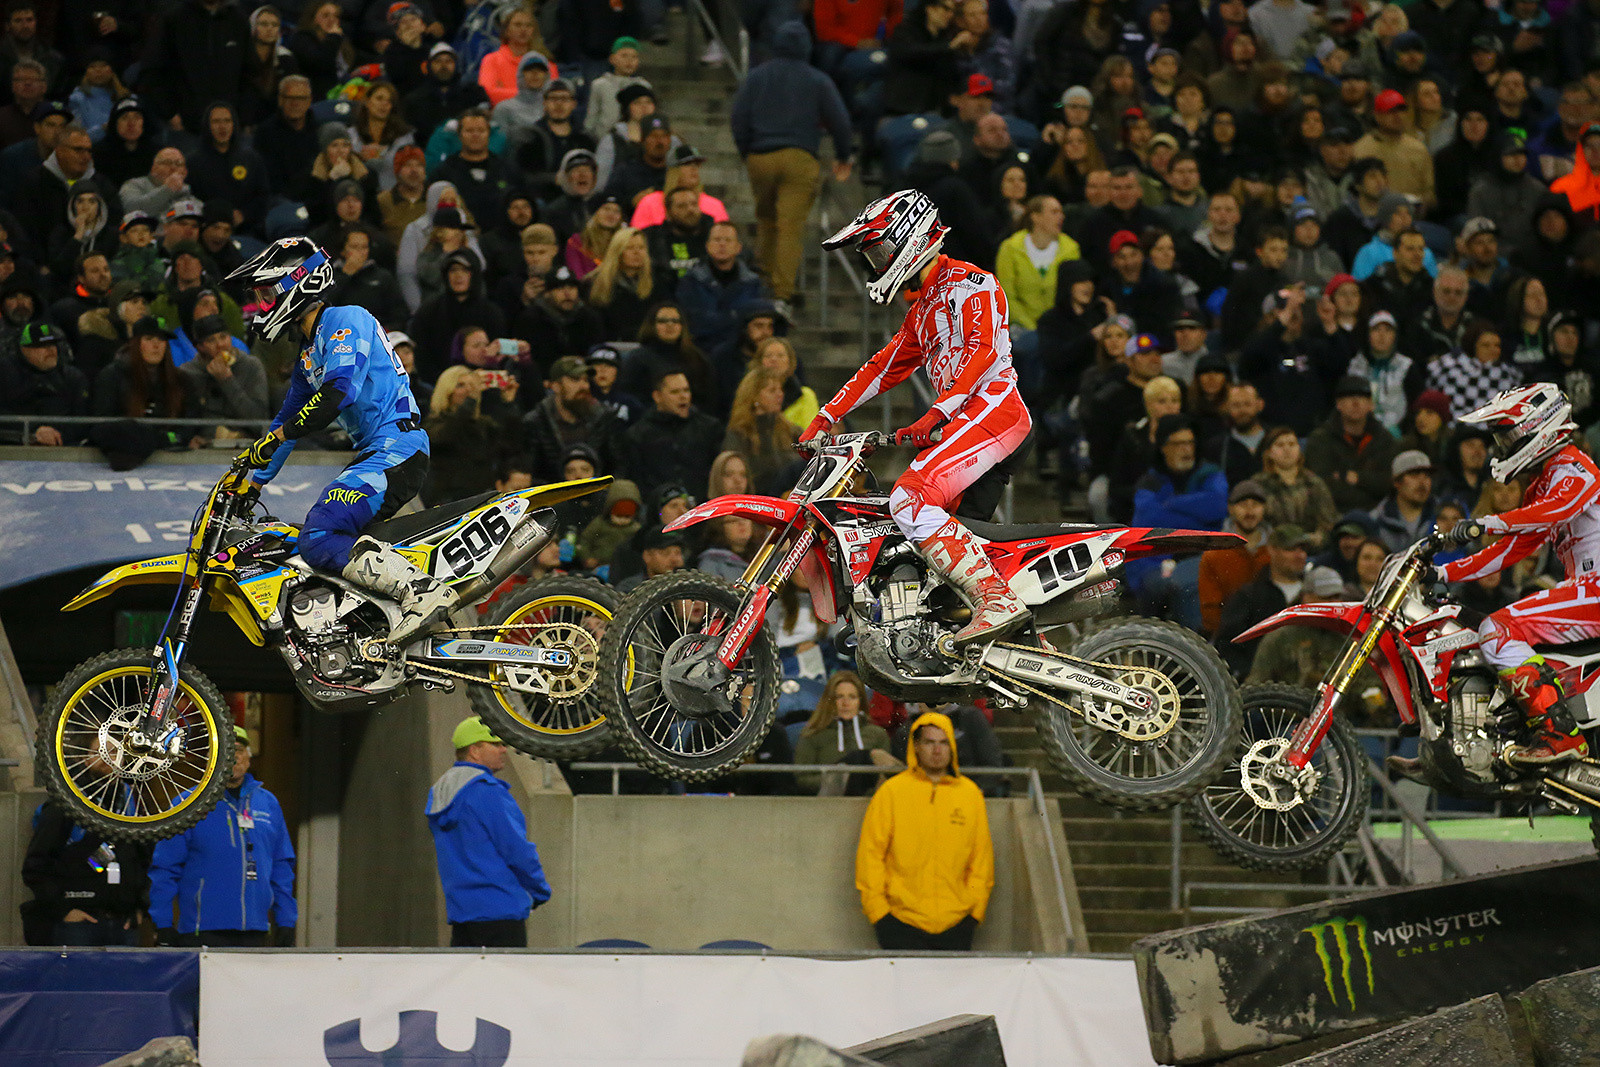 Ronnie Stewart, Justin Brayton, and Vince Friese - Photo Blast: Seattle - Motocross Pictures - Vital MX